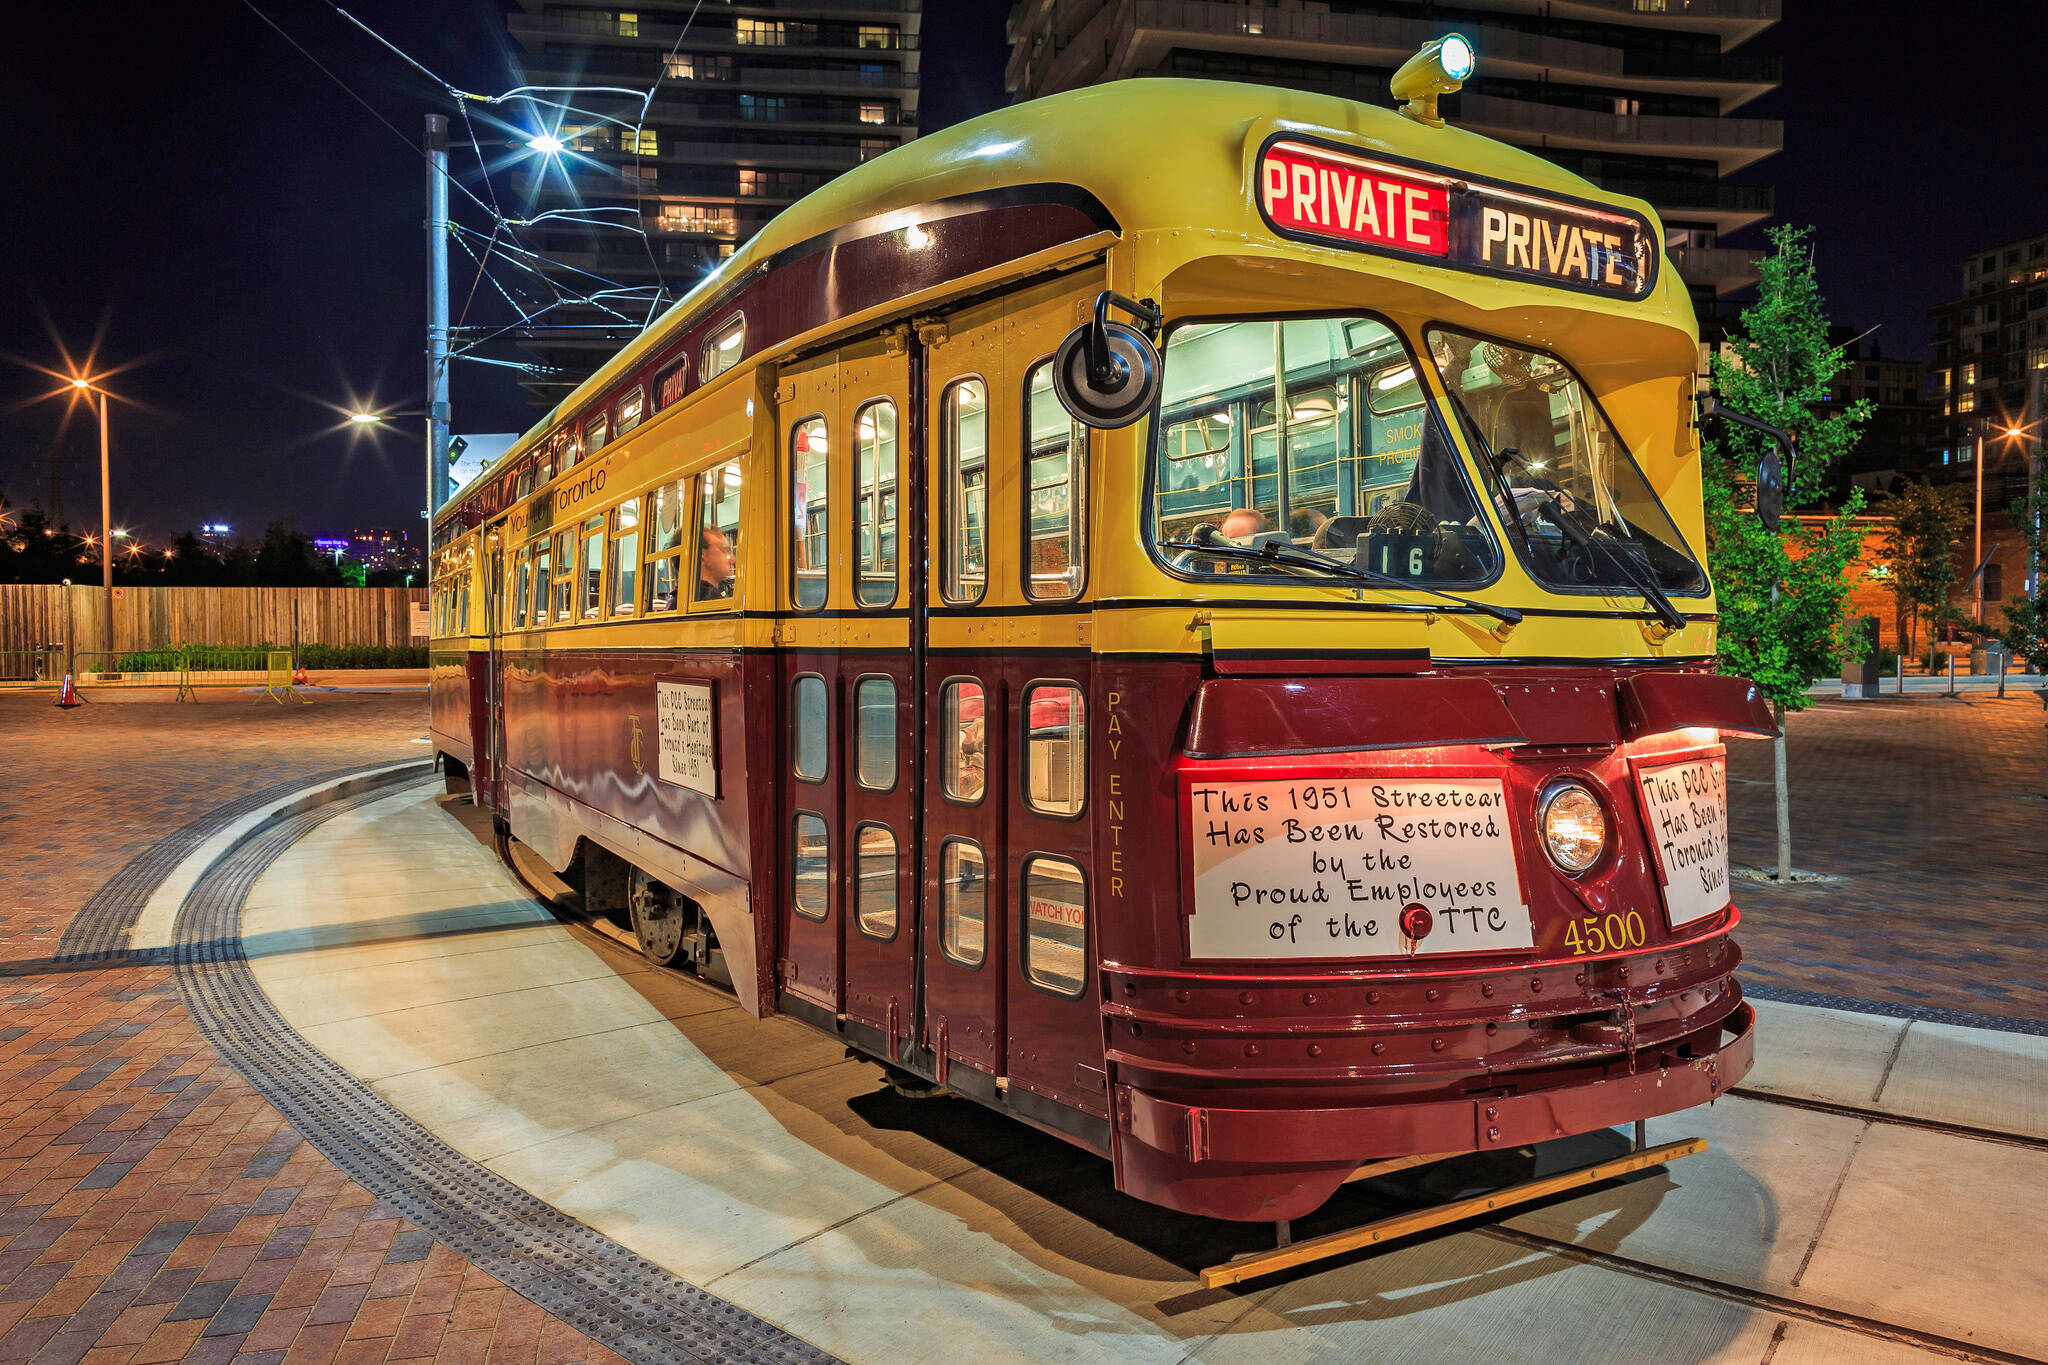 How To Rent Out A Ttc Streetcar In Toronto